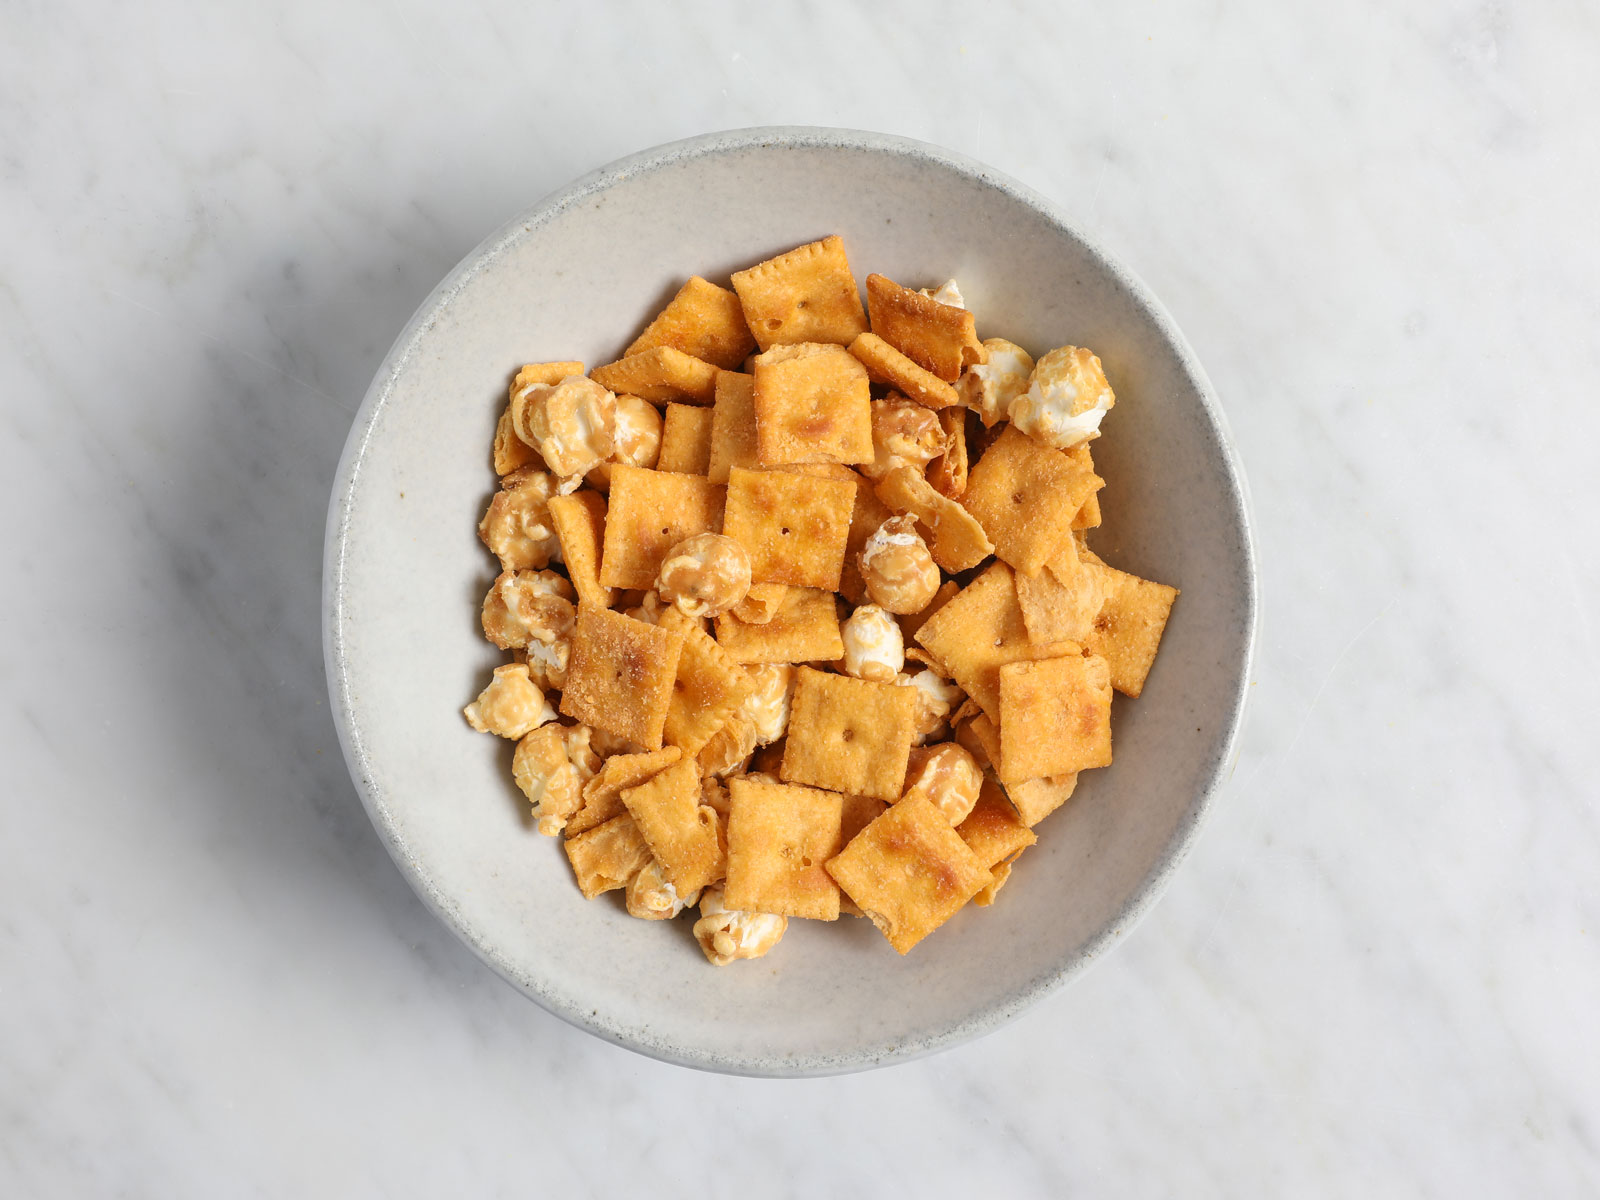 Duoz Caramel Popcorn and Cheddar Cheez-Its